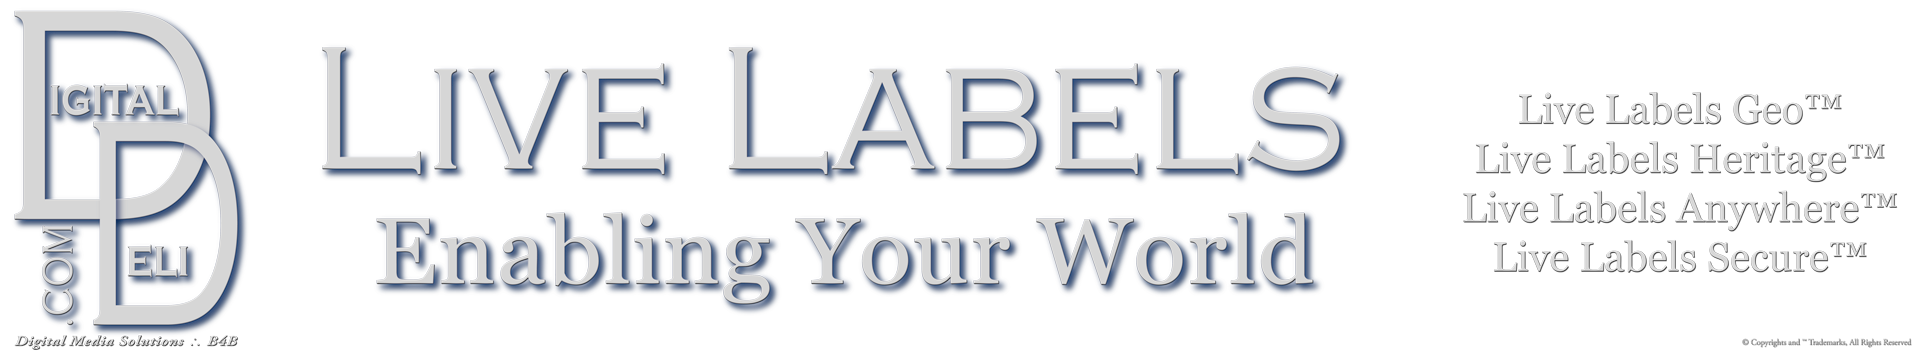 Live Labels™ Enabling Your World